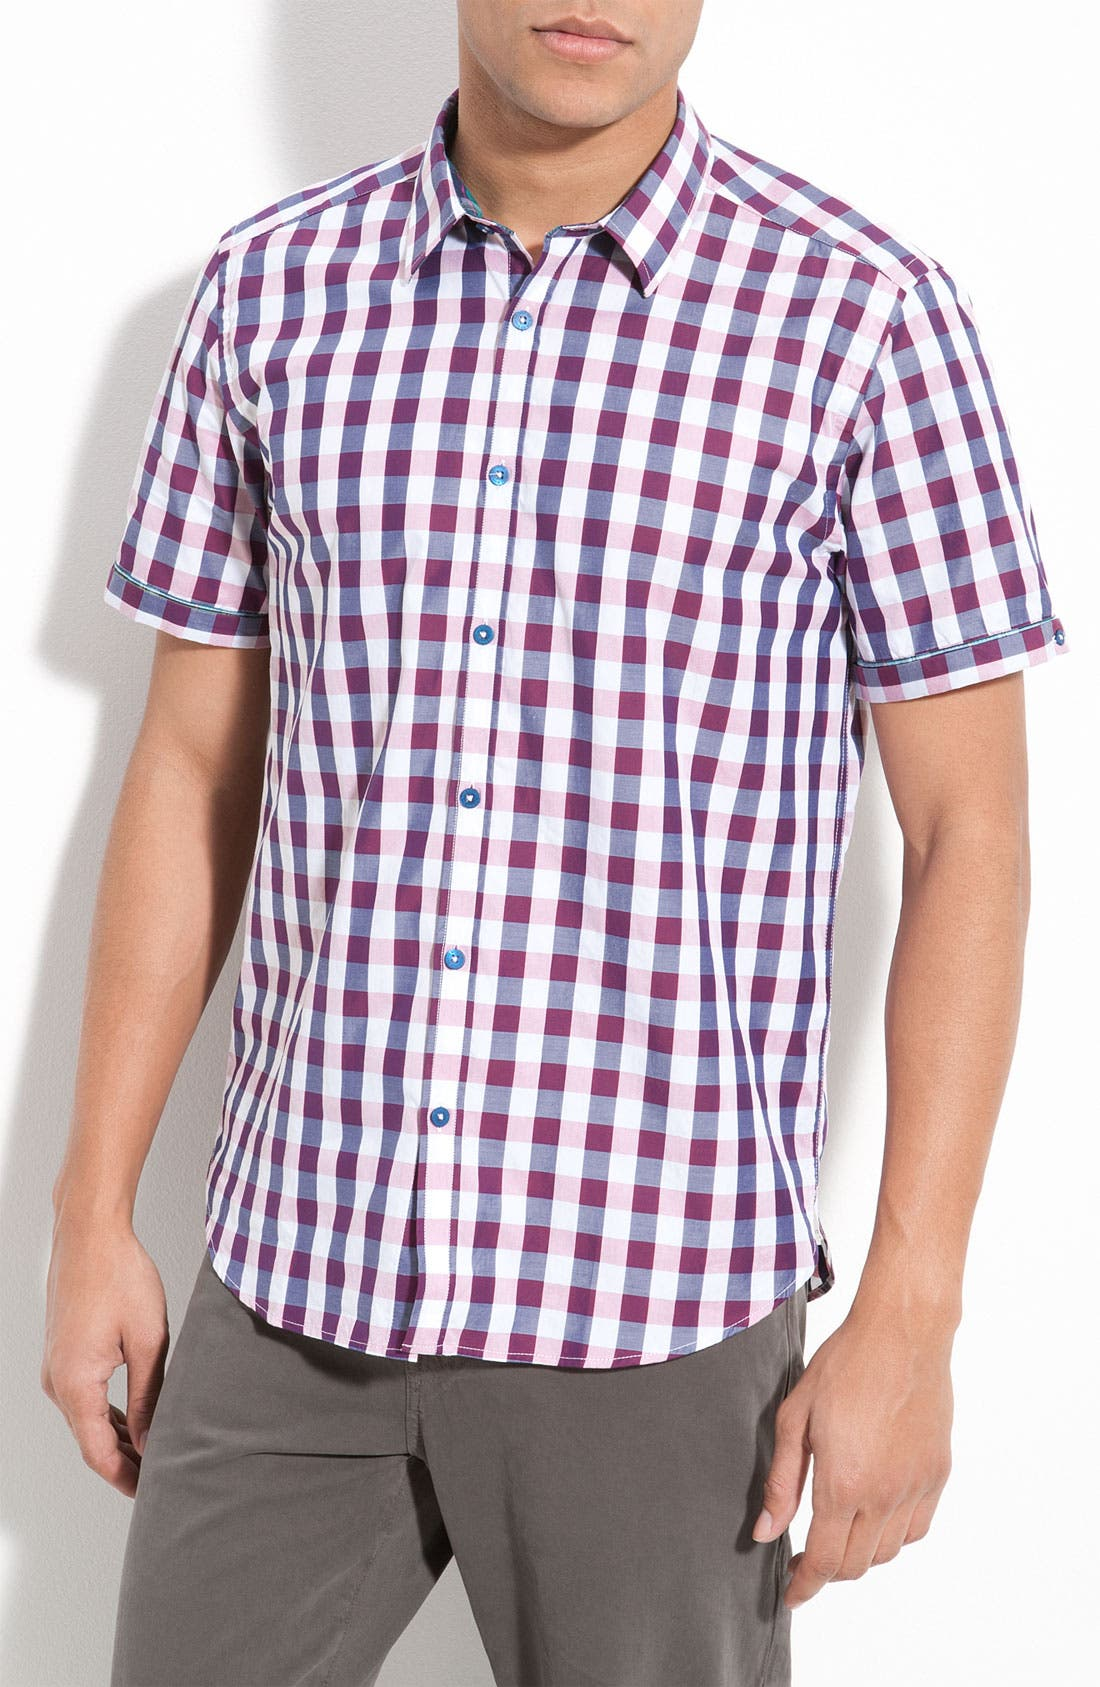 Alternate Image 1 Selected - Ted Baker London Check Plaid Woven Shirt